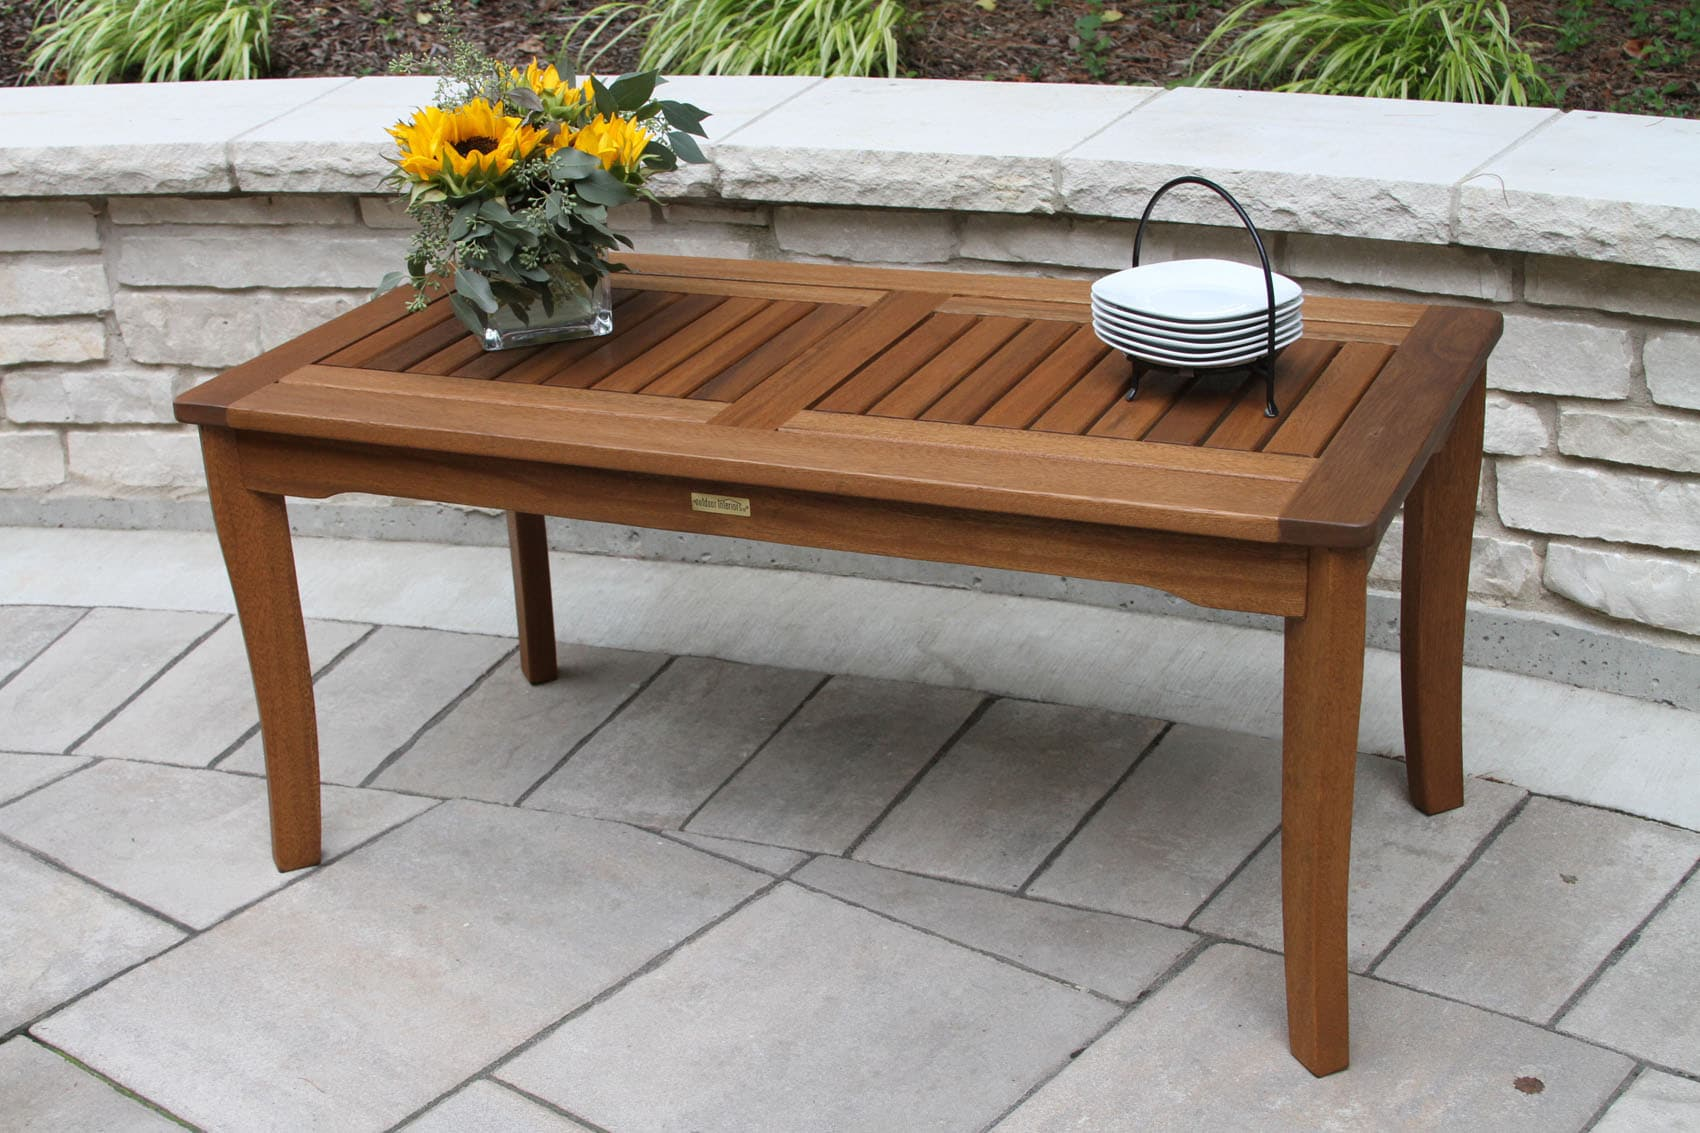 Curved Coffee Table Eucalyptus Wood Coffee Table For Decks, Patios, Gardens